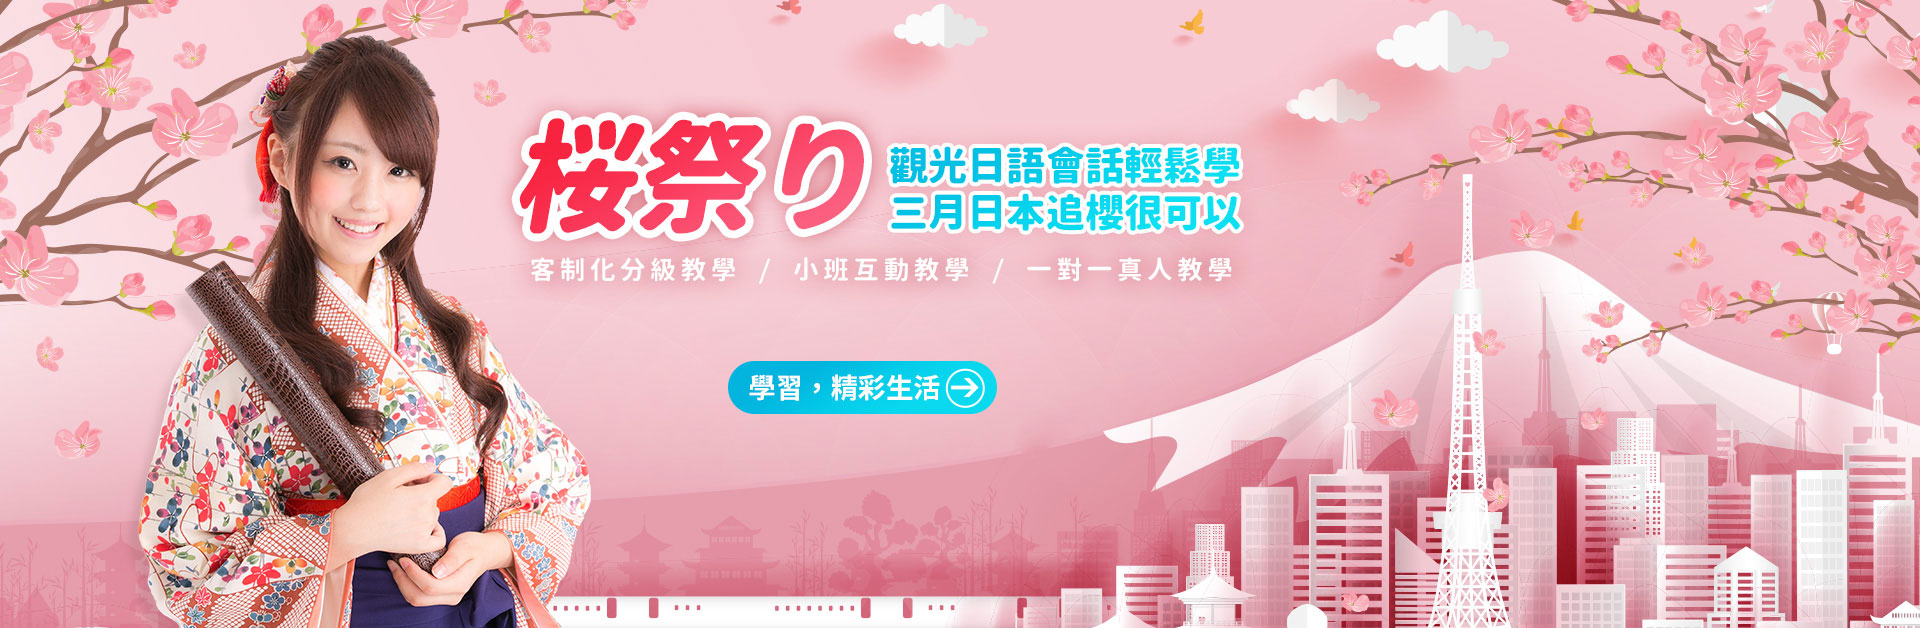 banner-link|https://www.abcgo.com.tw/commercial/ad/jpform.asp?mpo=341